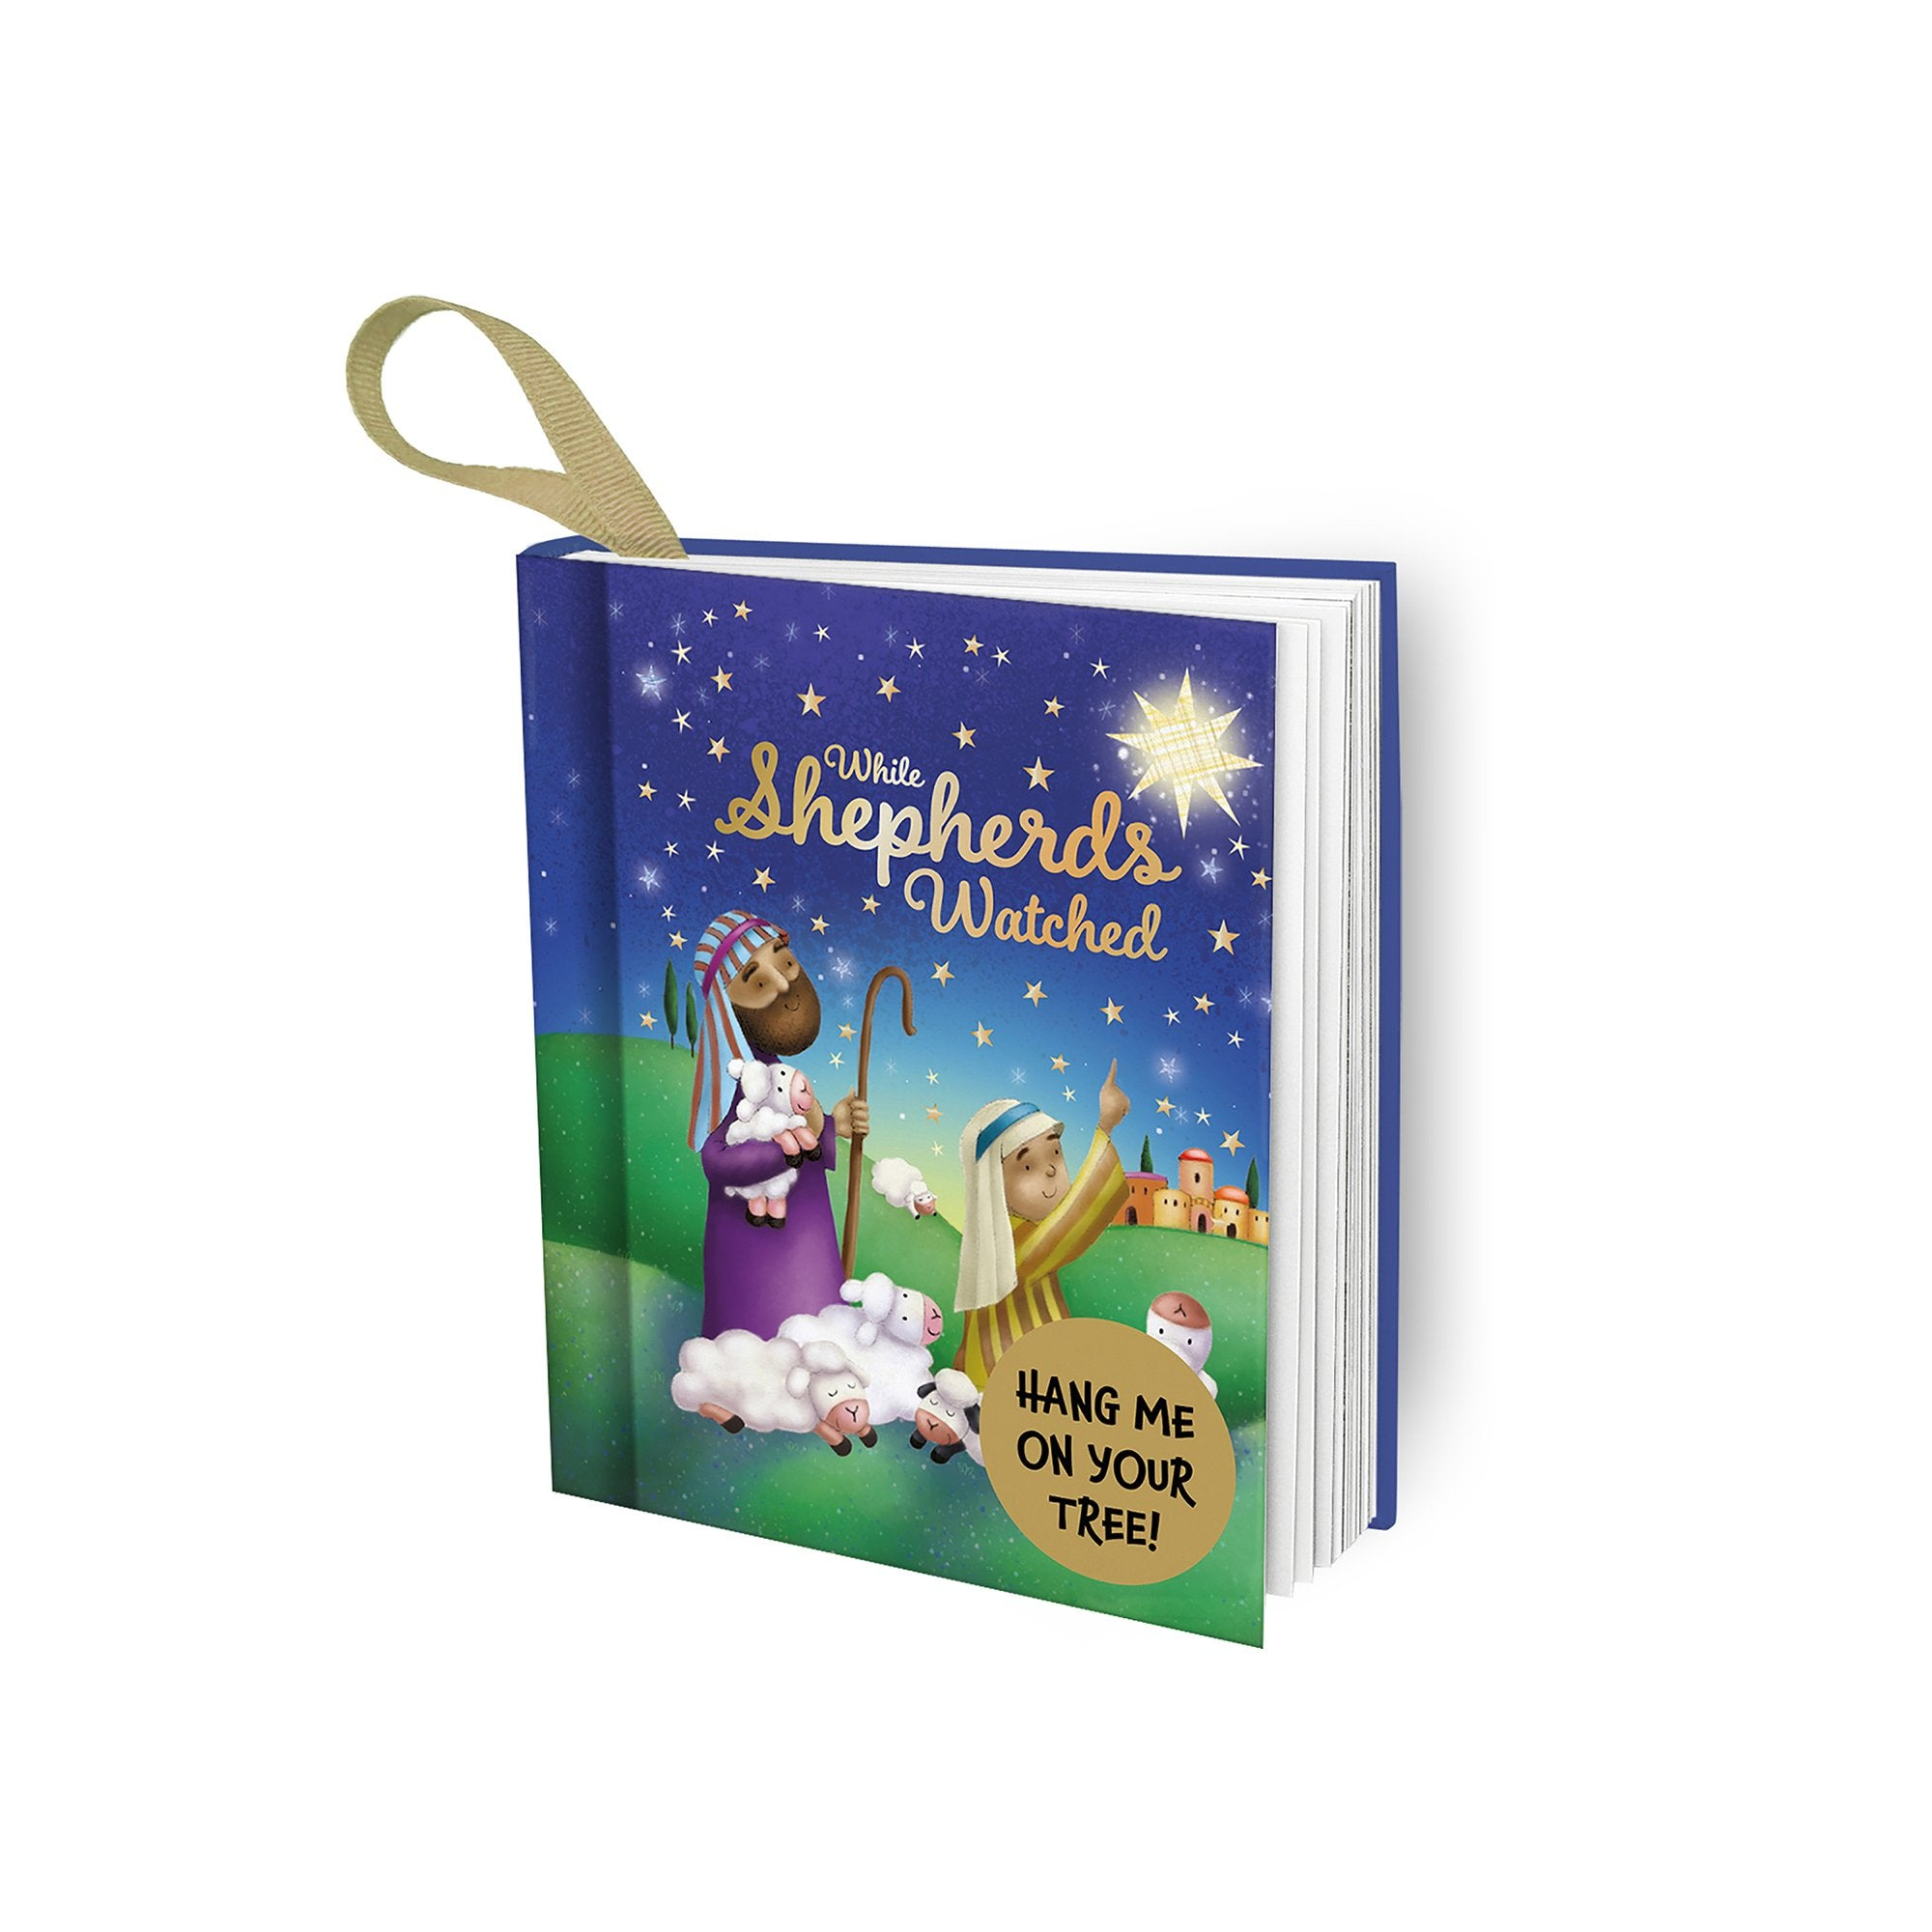 Christmas Giftbook - While Shepherd's Watched - Half Moon Bay US